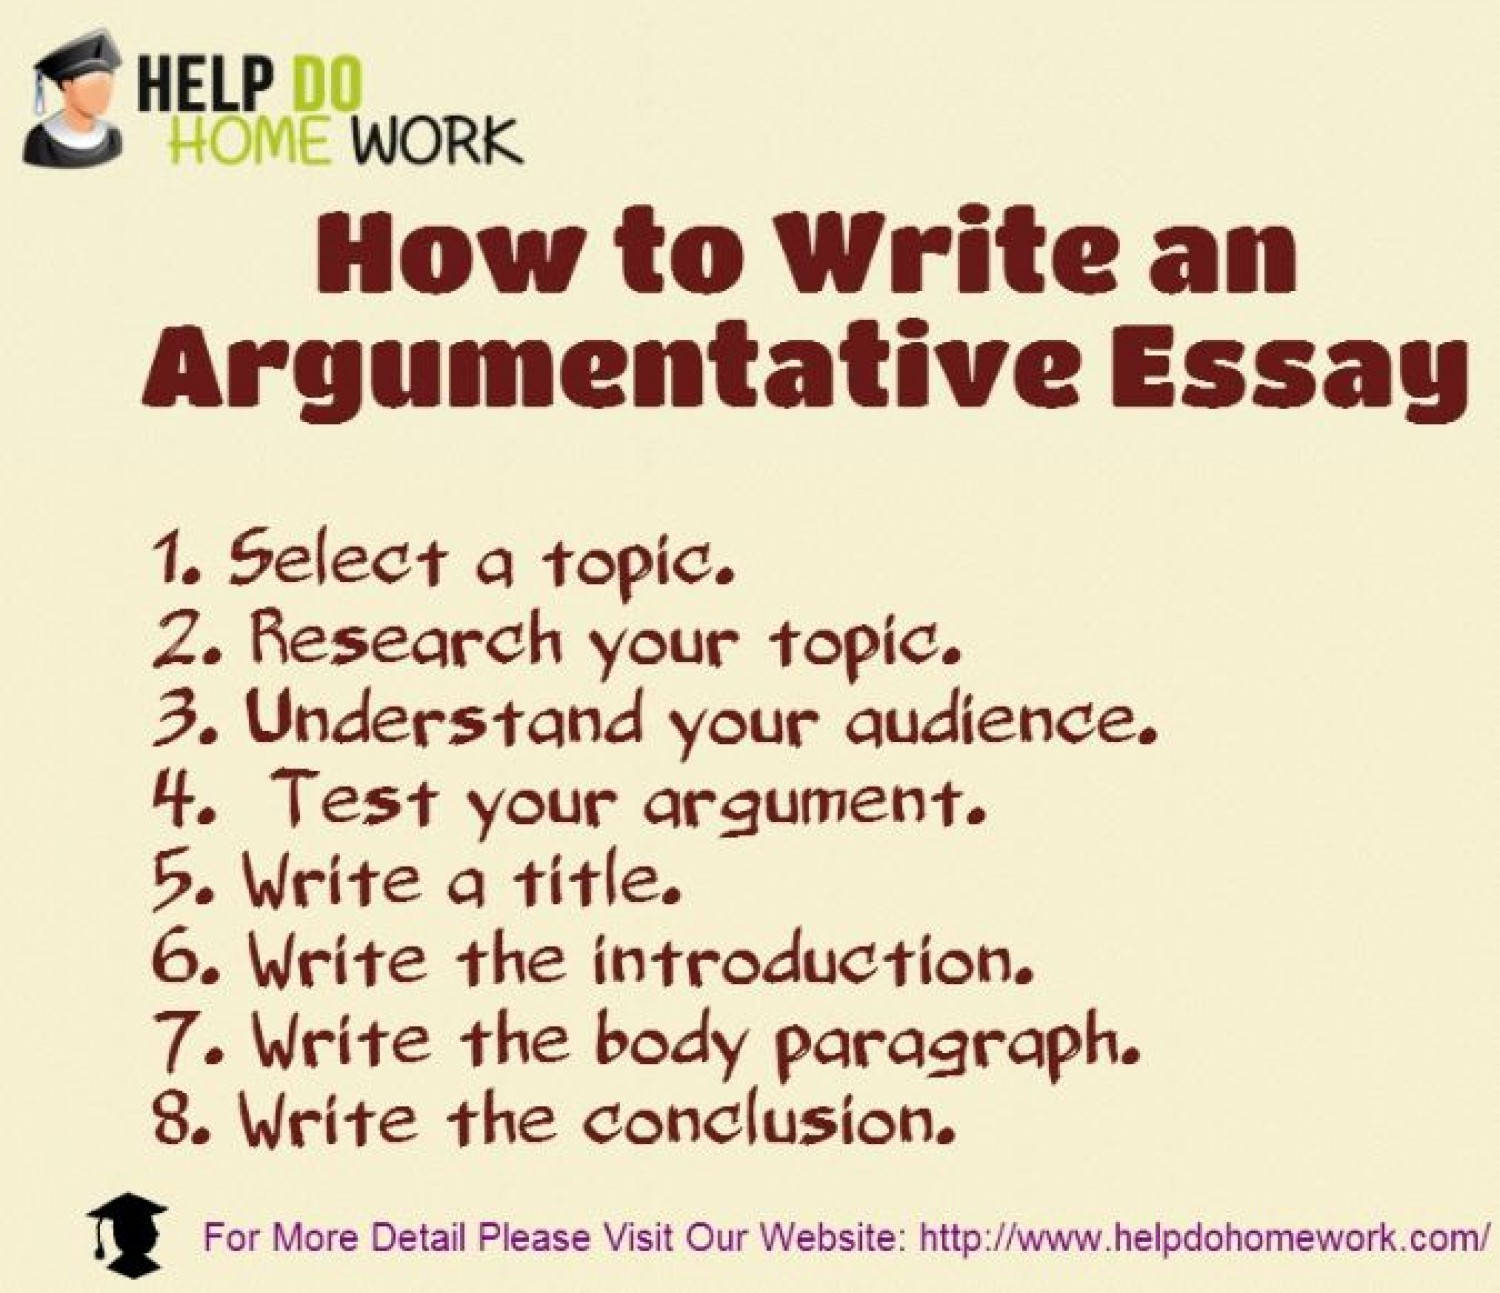 004 Steps To Writing An Argumentative Essay Example Utilize Functional And Utilitarian Approach For Your Academic Work 53b0d9bea1f6e W1500 Marvelous What Is The Second Step In Prewriting Process Easy Write Flow Chart Shows Some Of Full